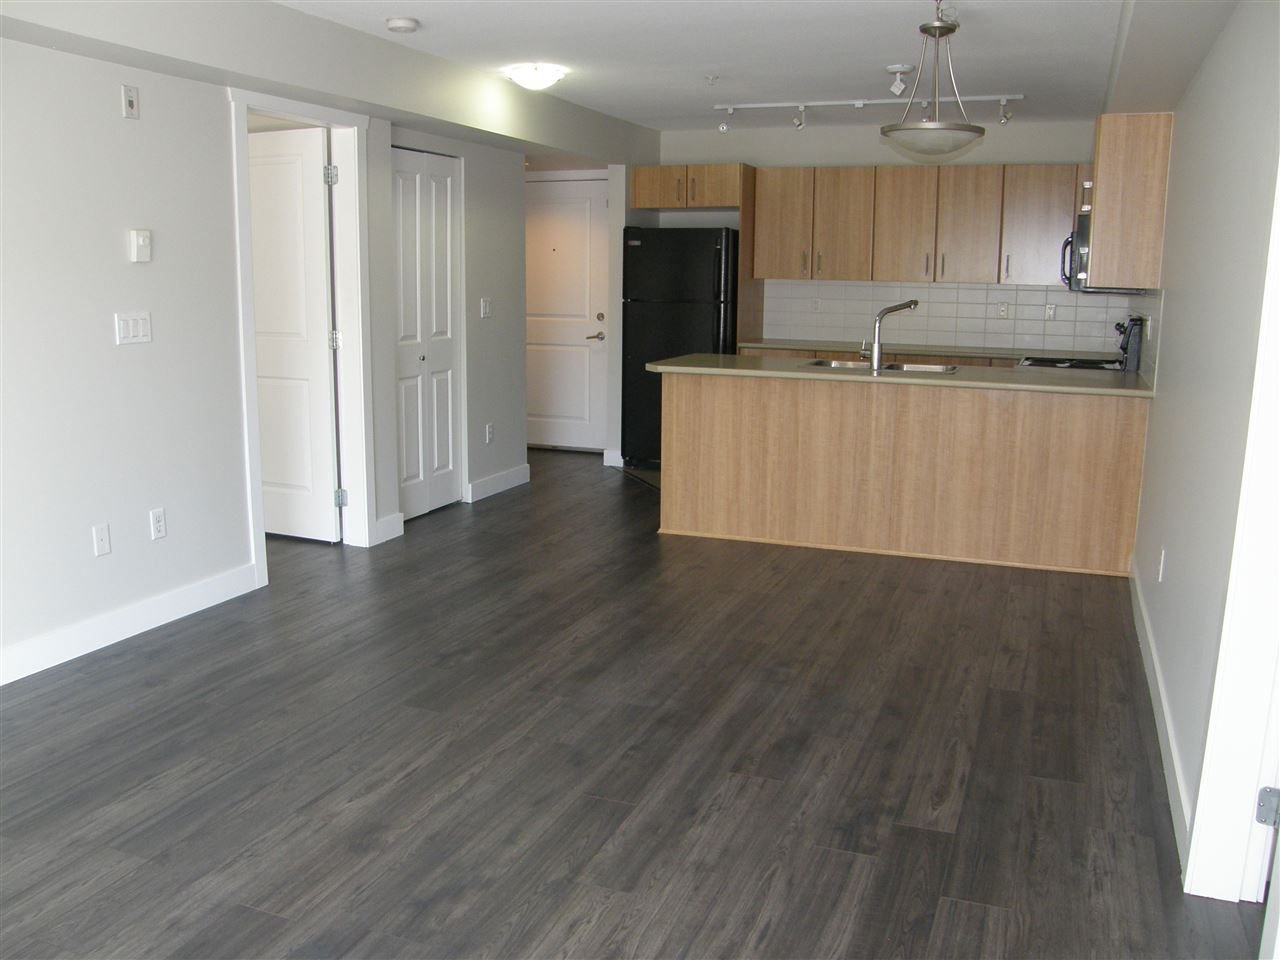 "Photo 3: Photos: 309 45561 YALE Road in Chilliwack: Chilliwack W Young-Well Condo for sale in ""VIBE CONDOS"" : MLS®# R2292861"